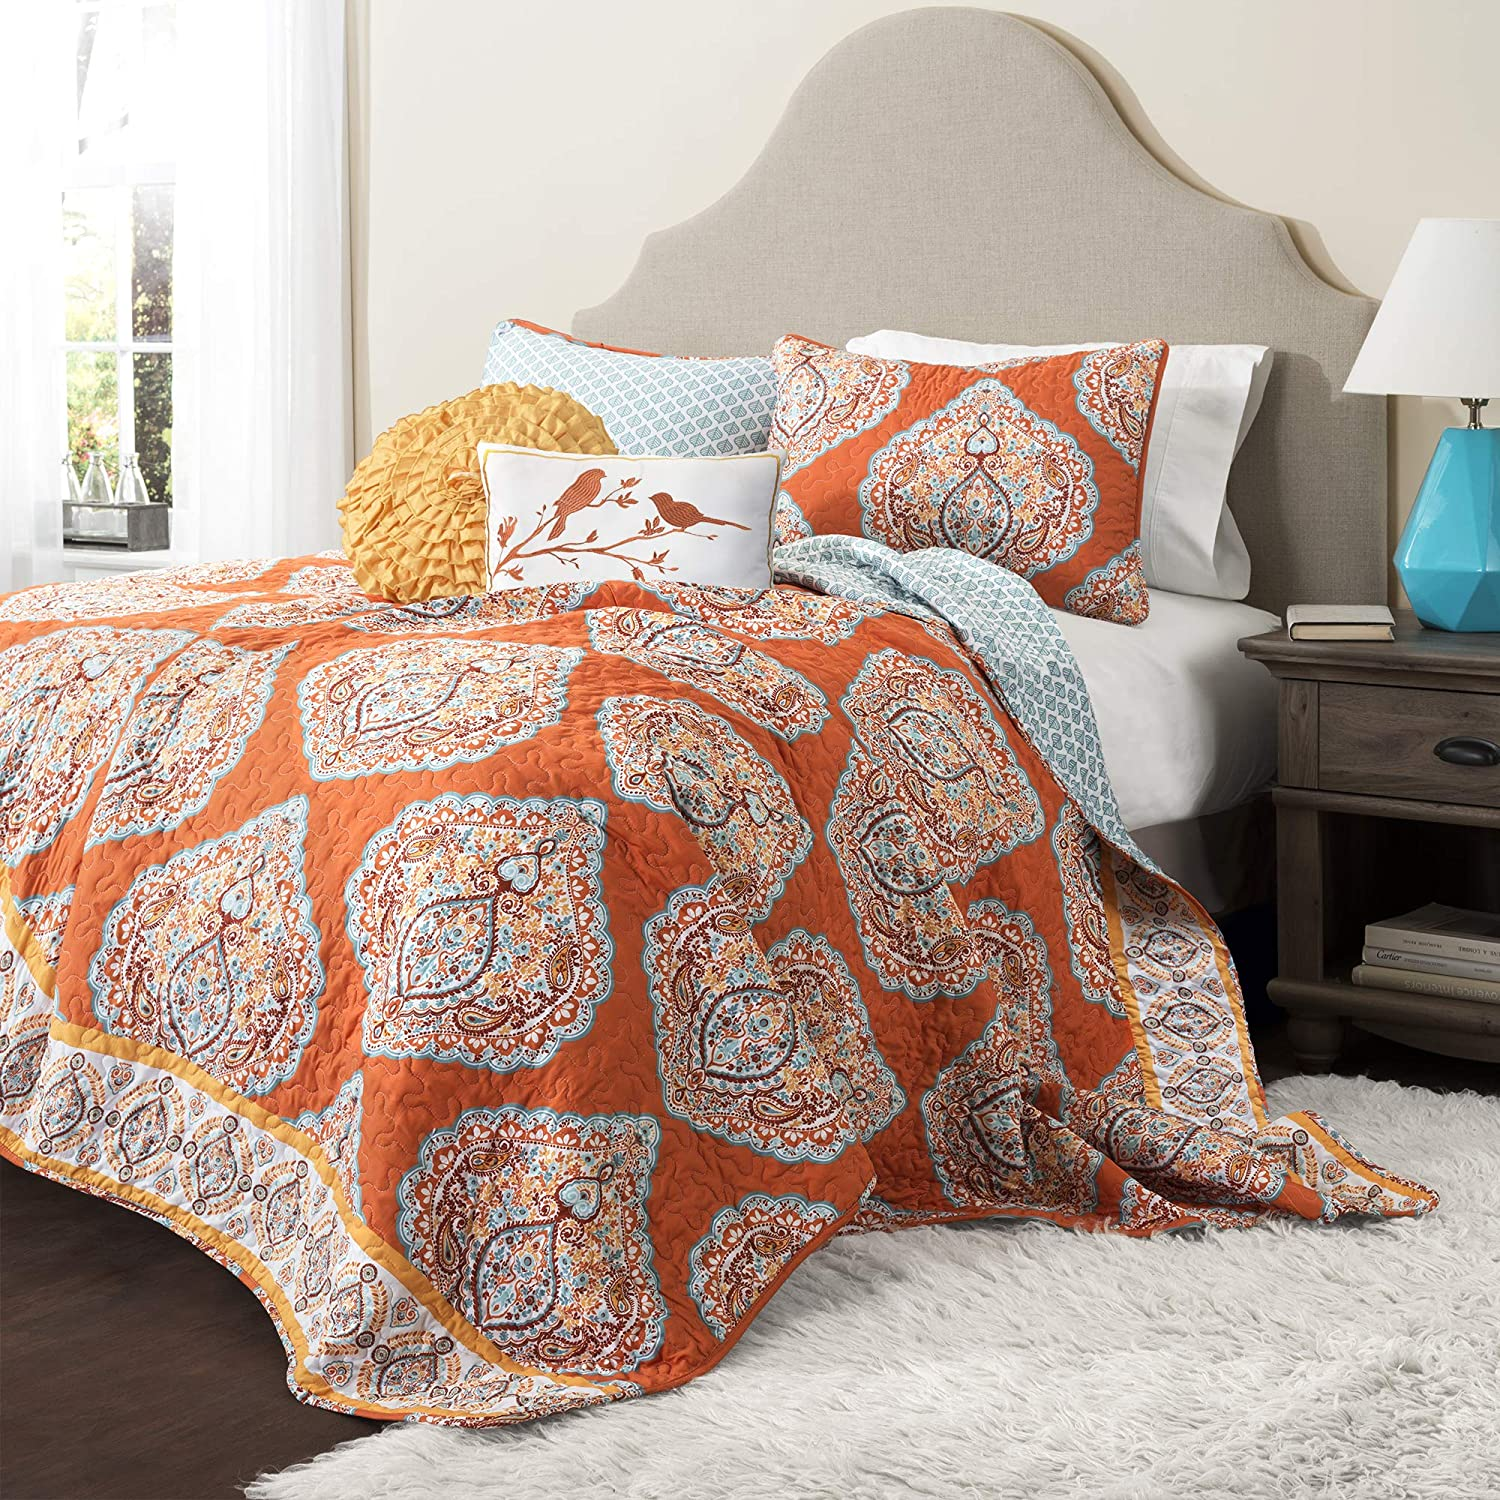 Lush Décor Harley Quilt Damask Pattern Reversible 5 Piece Bedding Set King, Tangerine